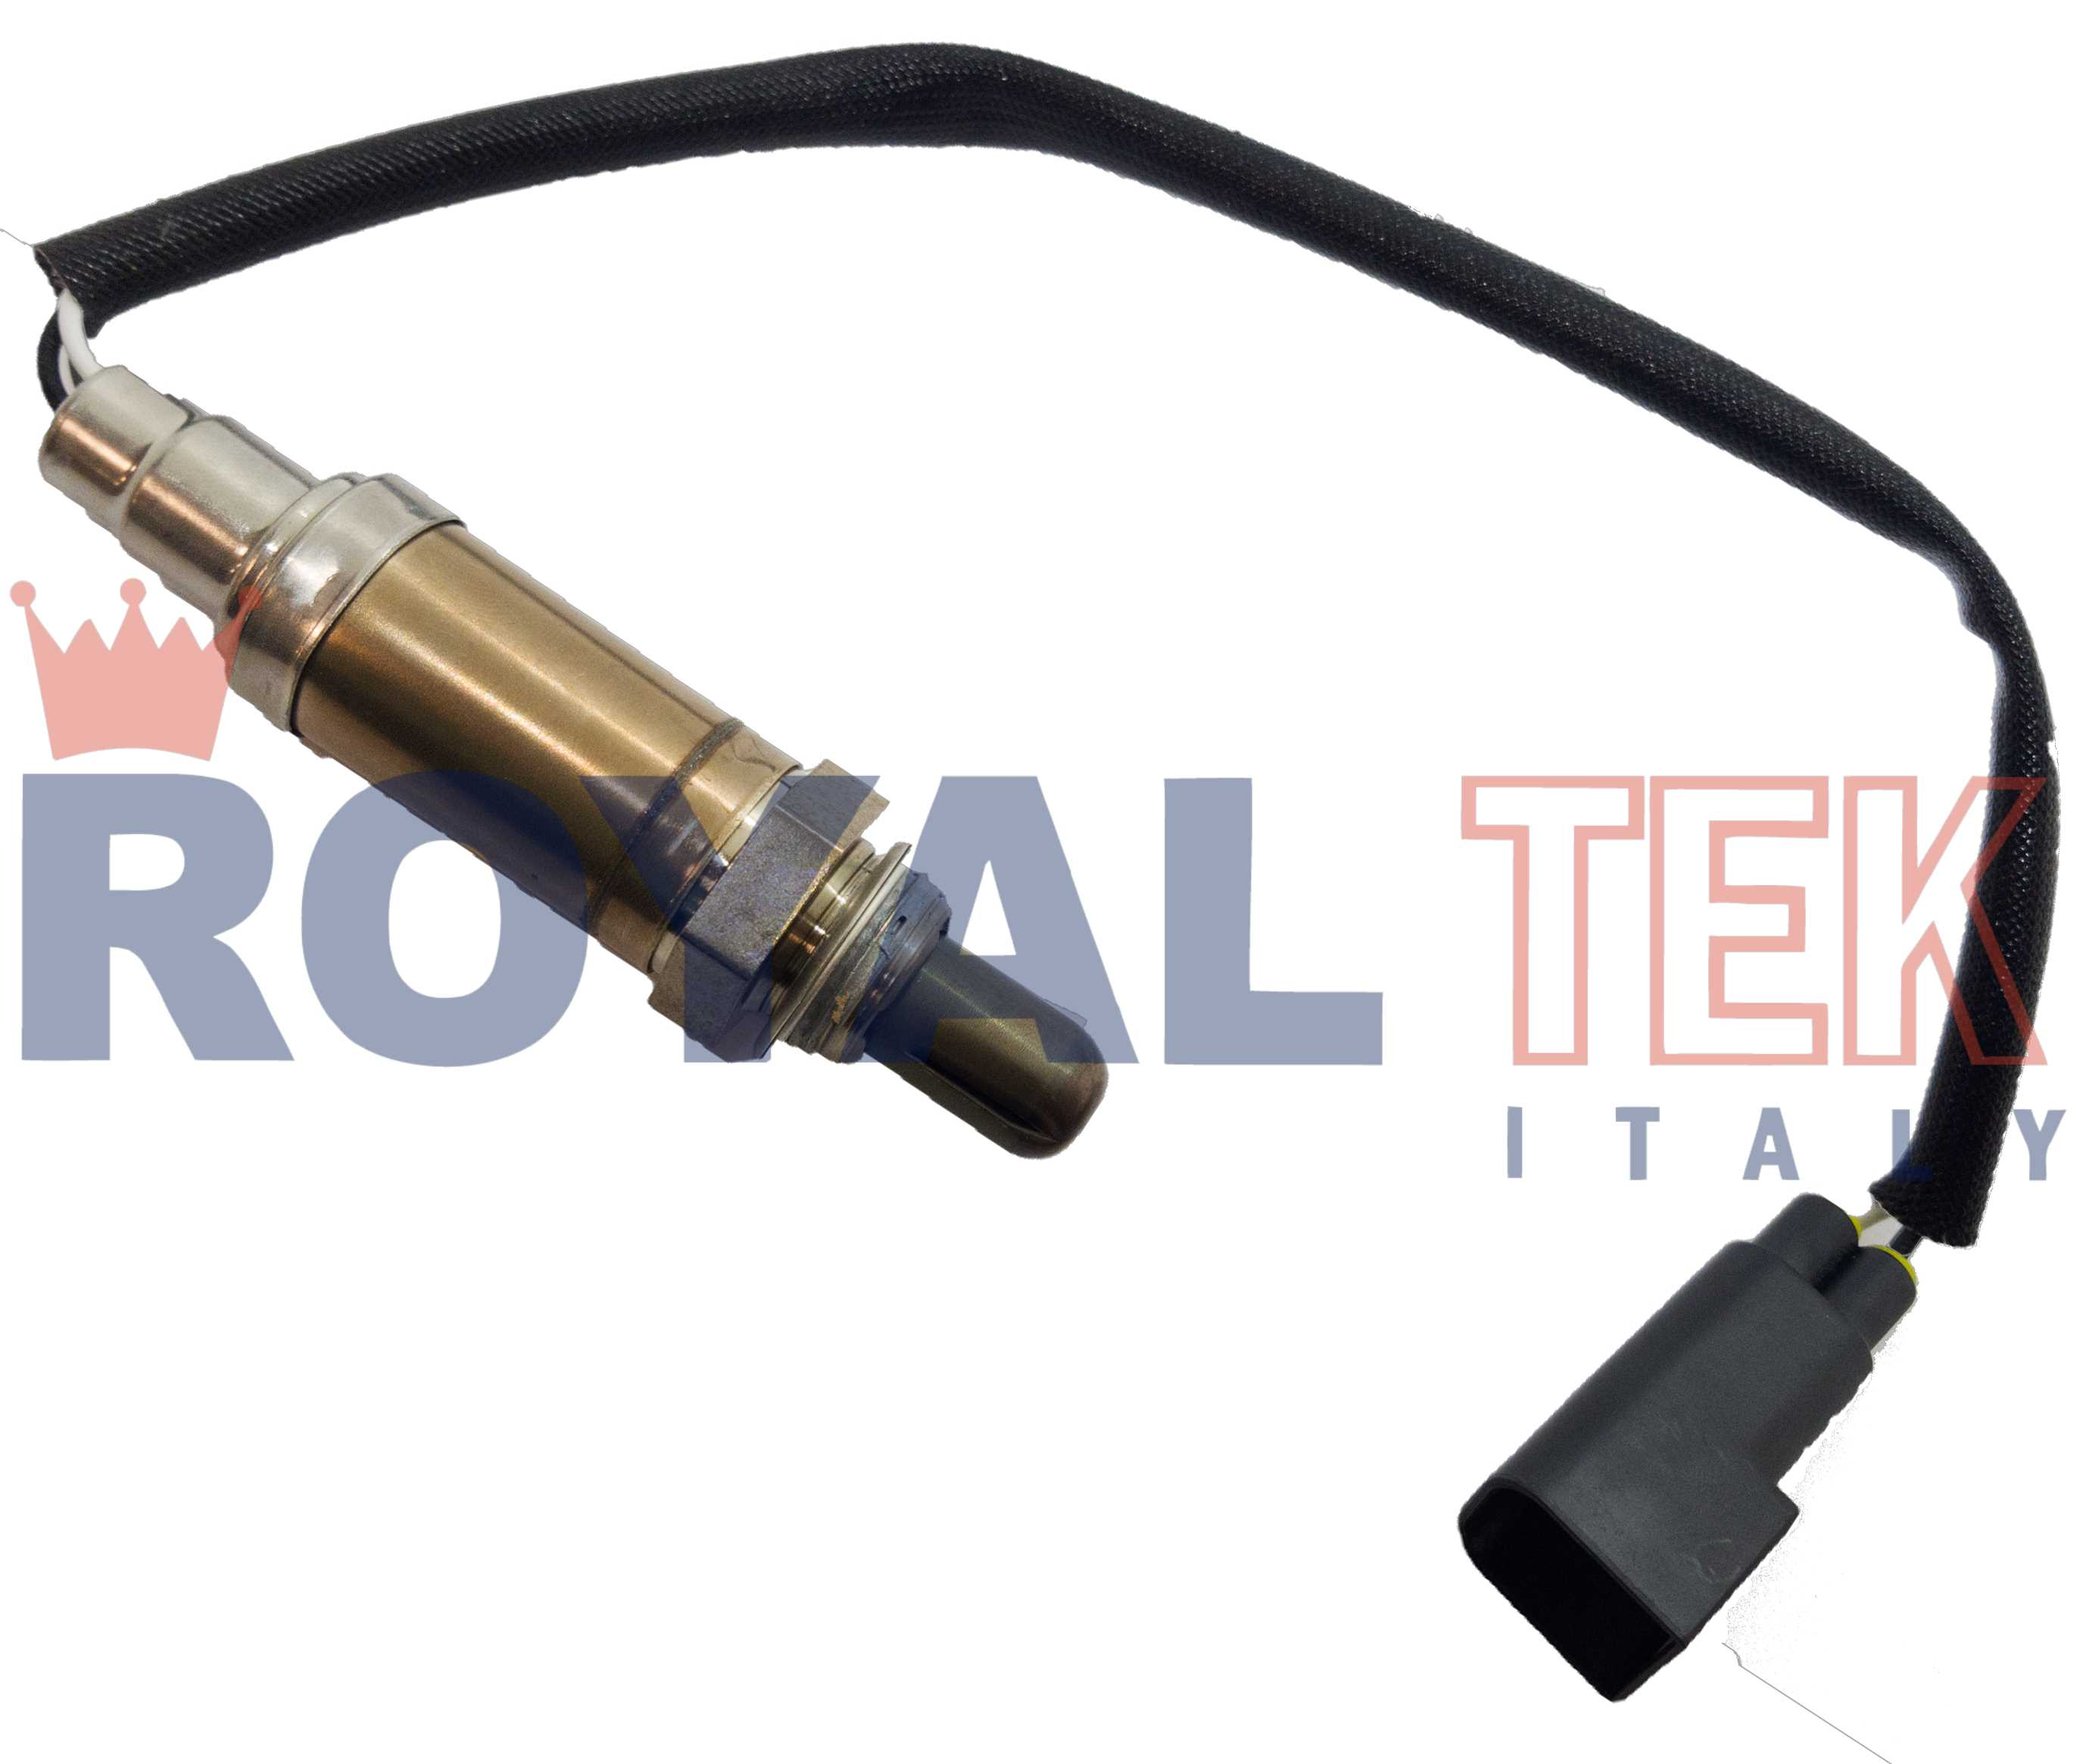 RT 6010 - SONDA LAMBDA ROYALTEK FORD FIESTA  KA 1.3 Endura  4 CABLES - LARGO DEL CABLE 260mm --- BOSCH 0258003714 OEM 1001702